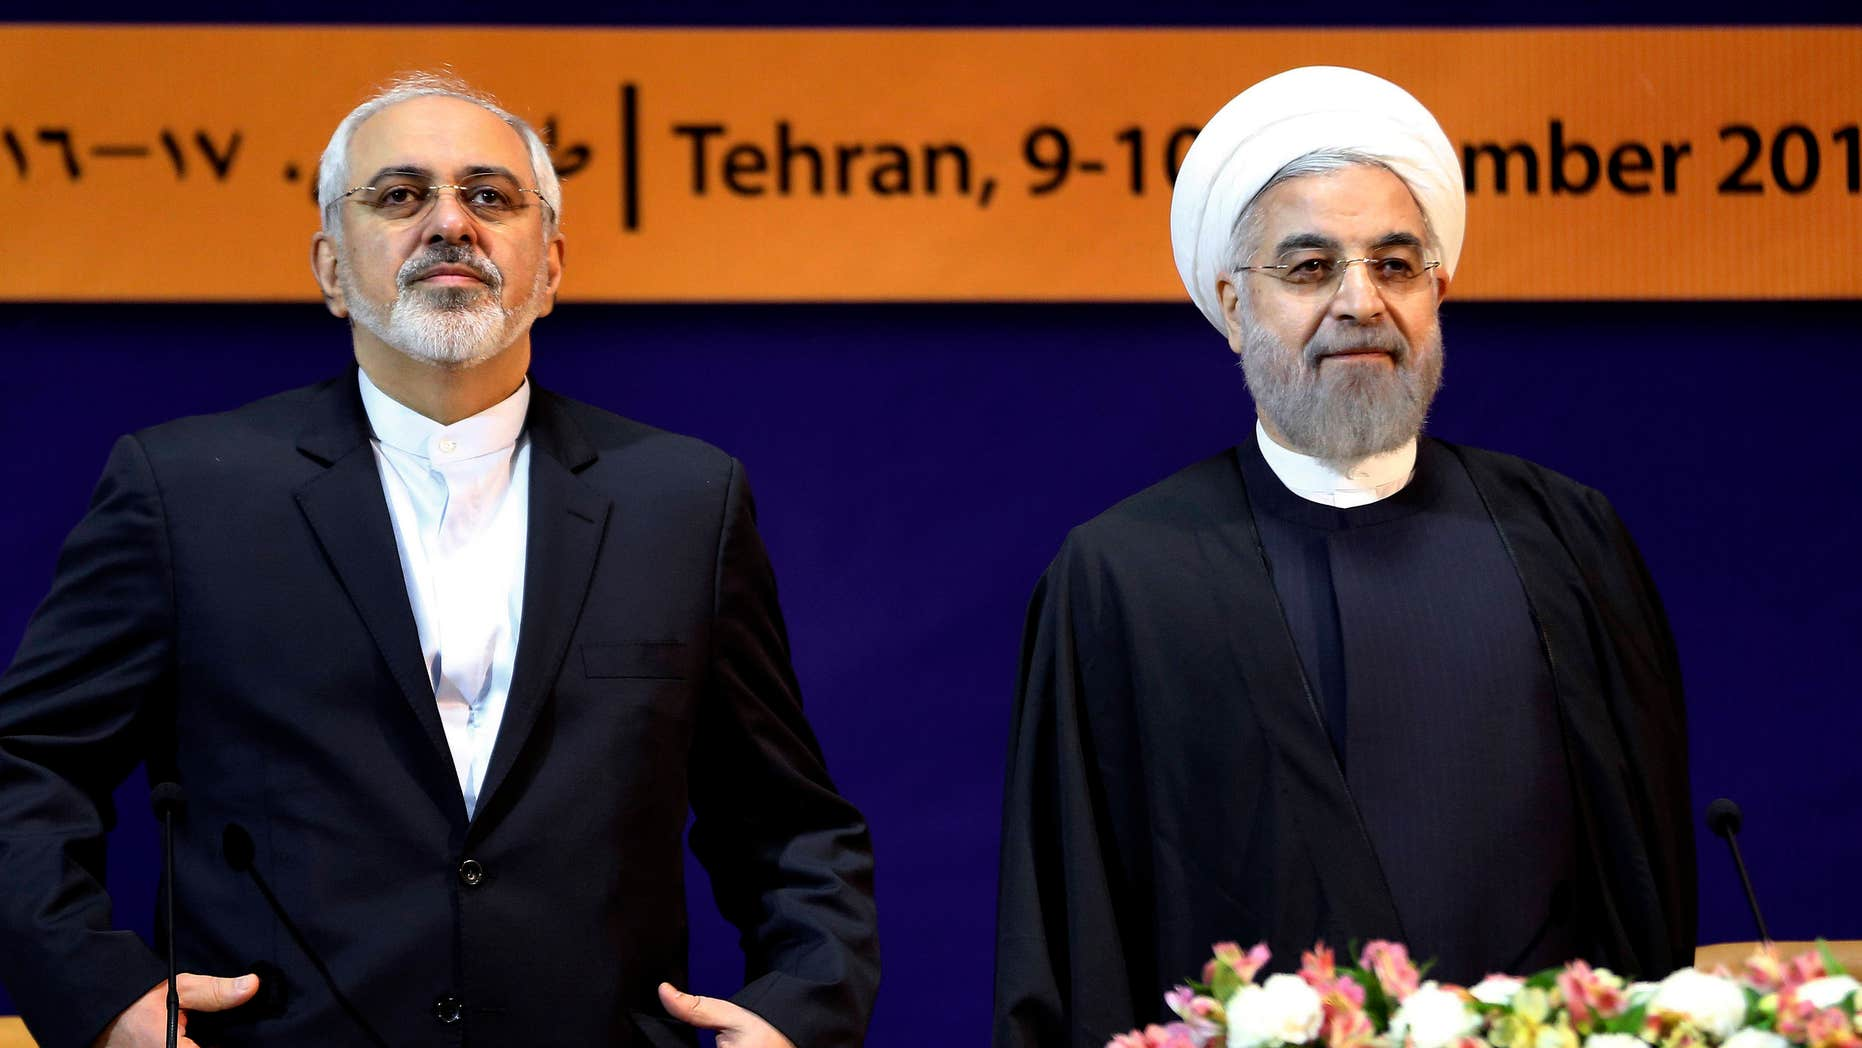 """Dec. 9, 2014:  Iranian President Hassan Rouhani, right, and Foreign Minister Mohammad Javad Zarif listen to the Iranian national anthem ahead of the """"World Against Violence and Extremism,"""" conference."""